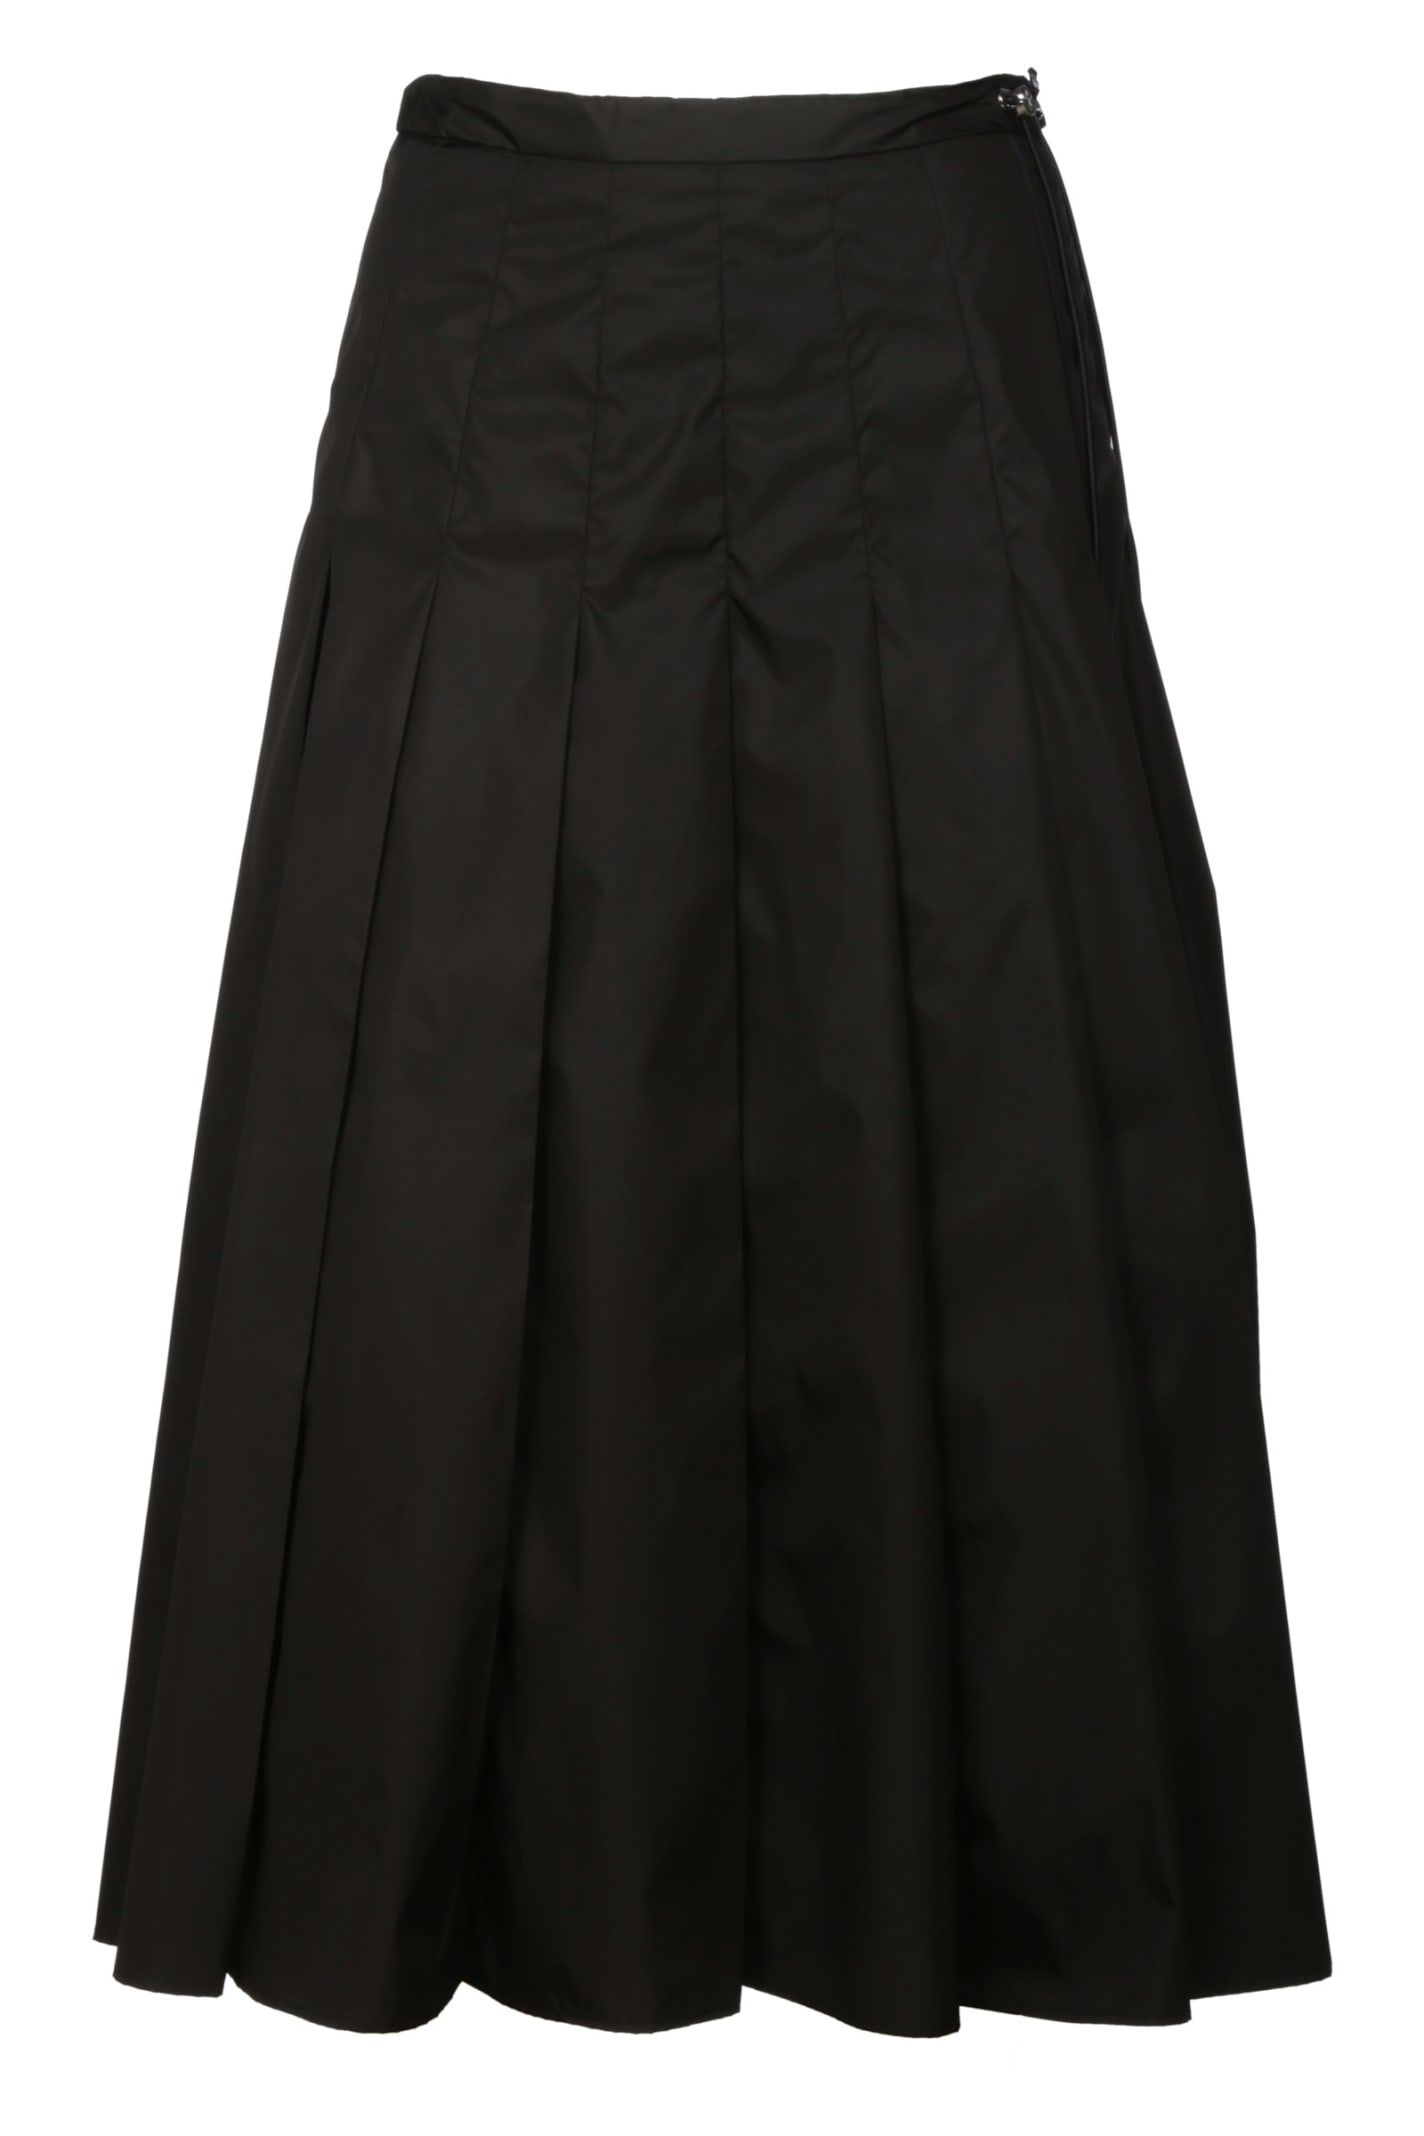 Buy Moncler Pleated Flared Dress online, shop Moncler with free shipping